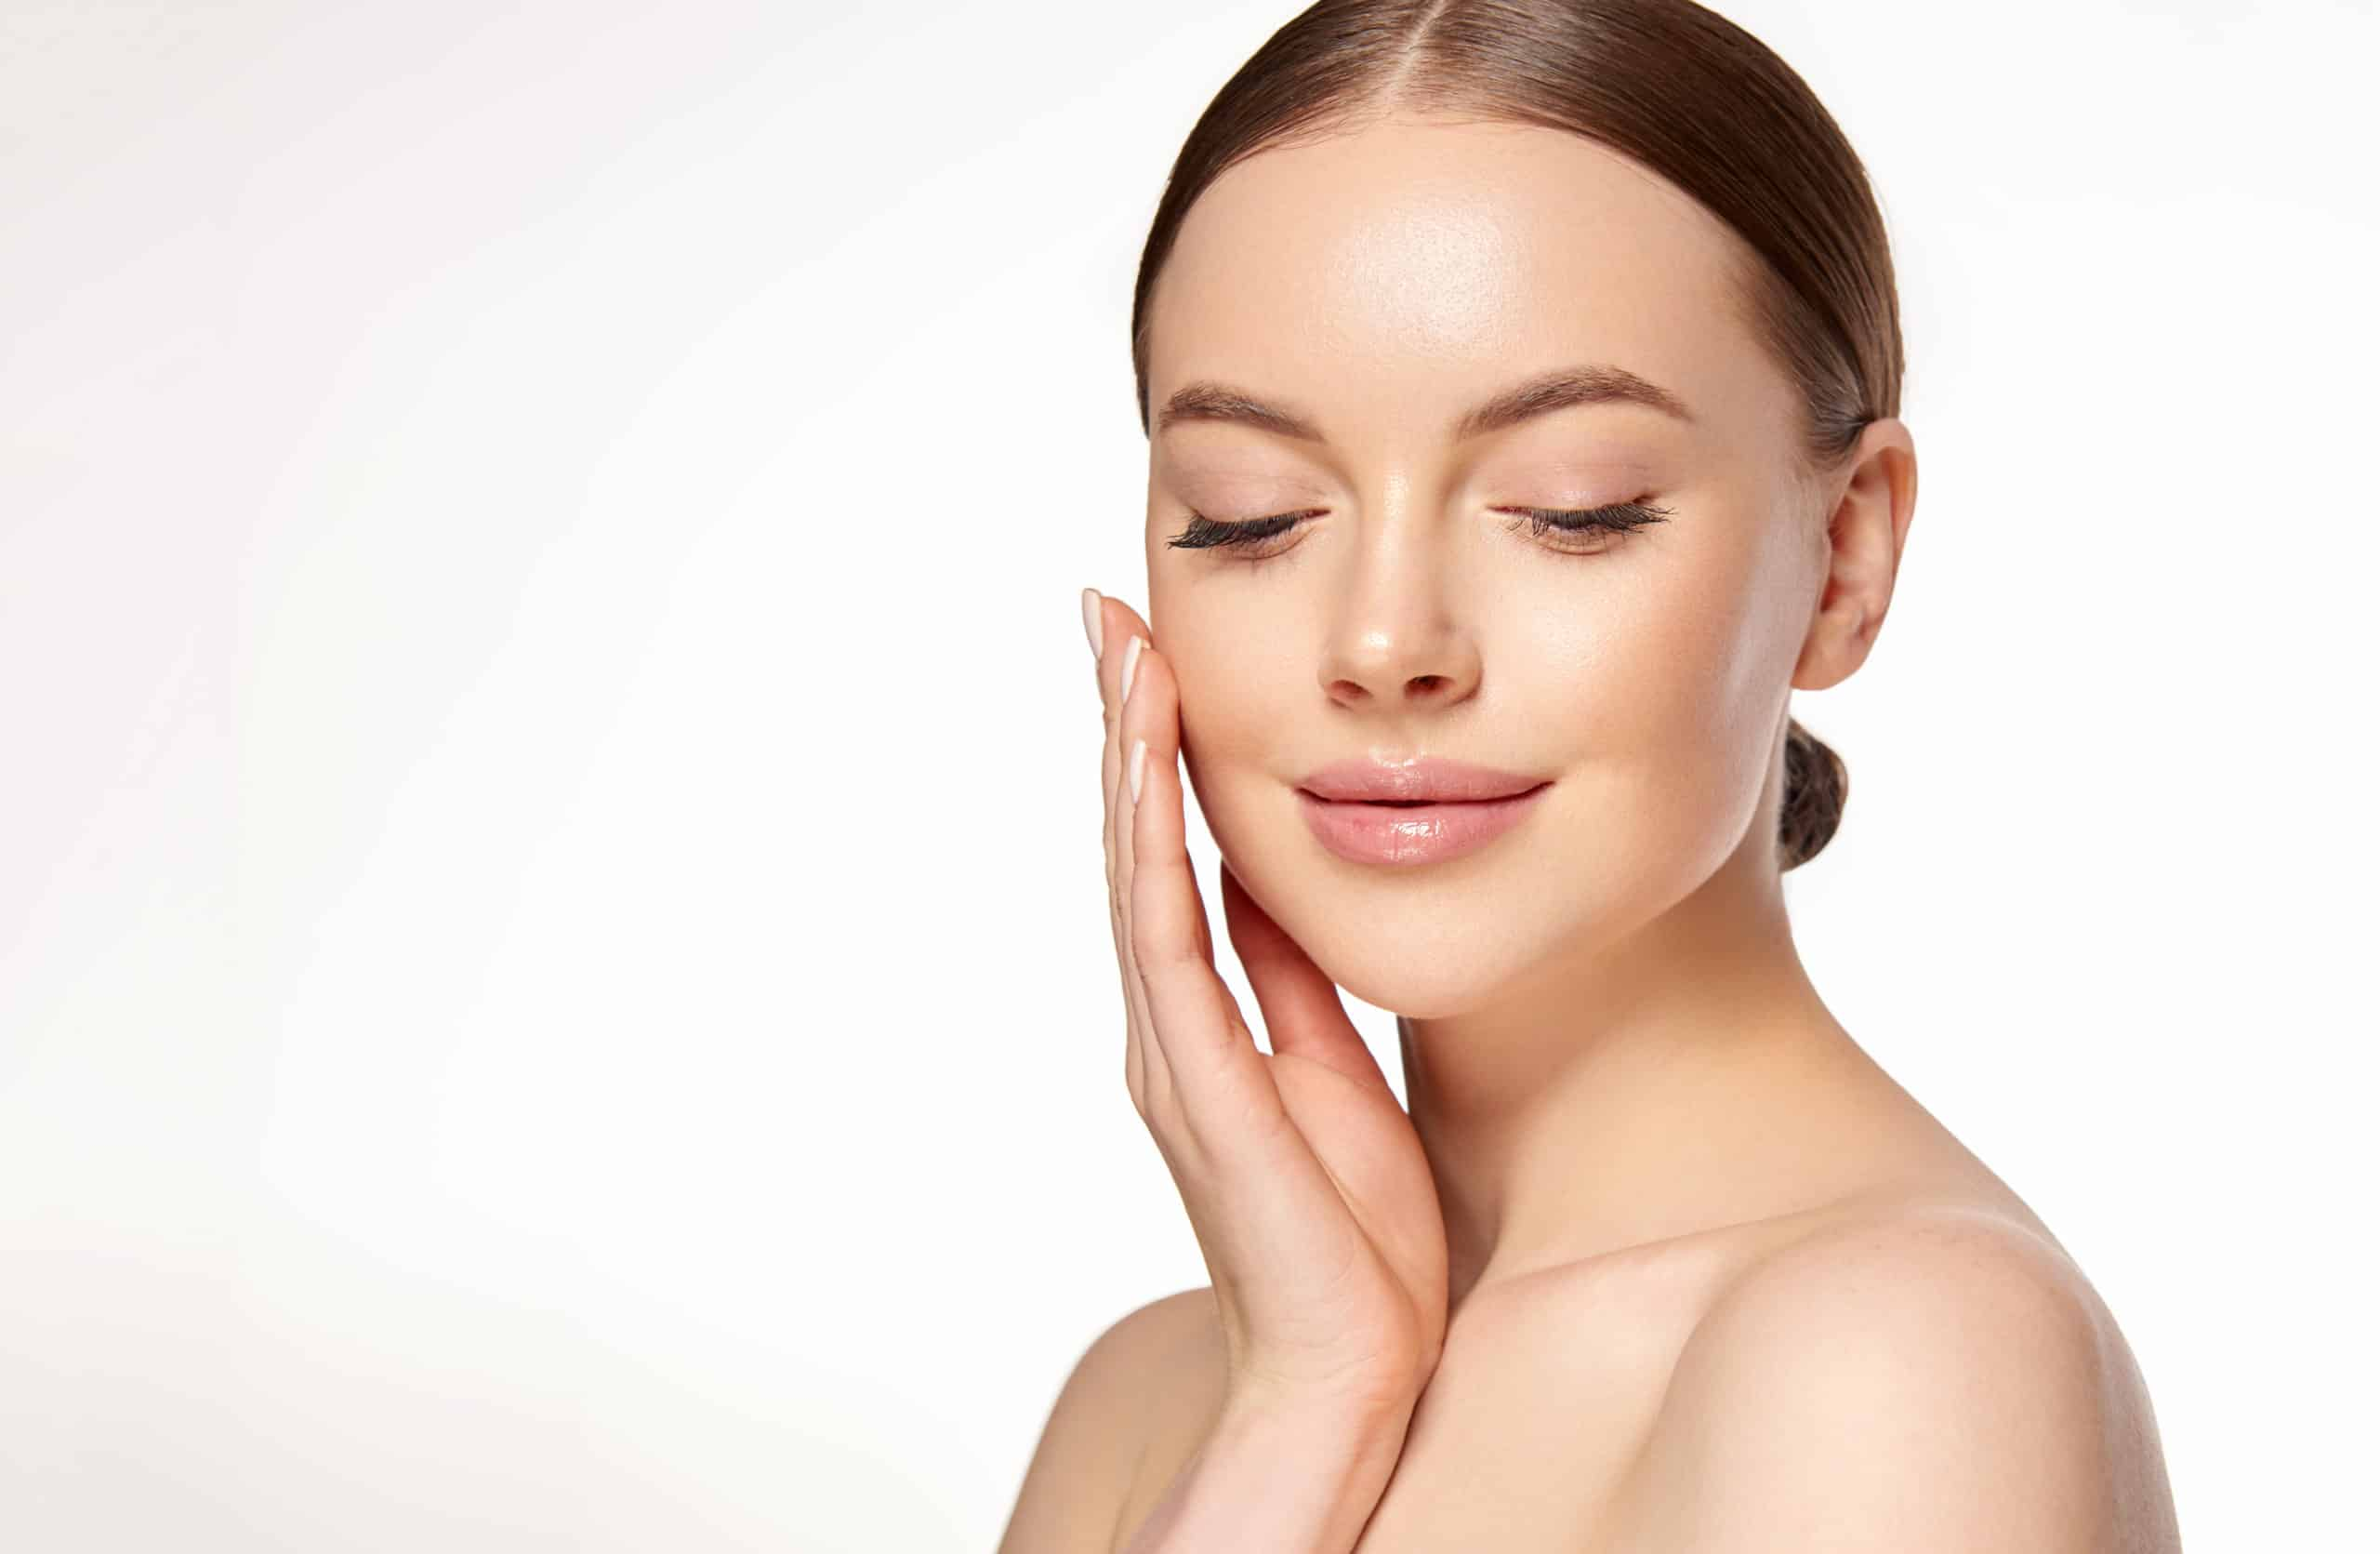 Zen Smile Spa Javea | Fillers - Hyaluronic Acid or Fillers